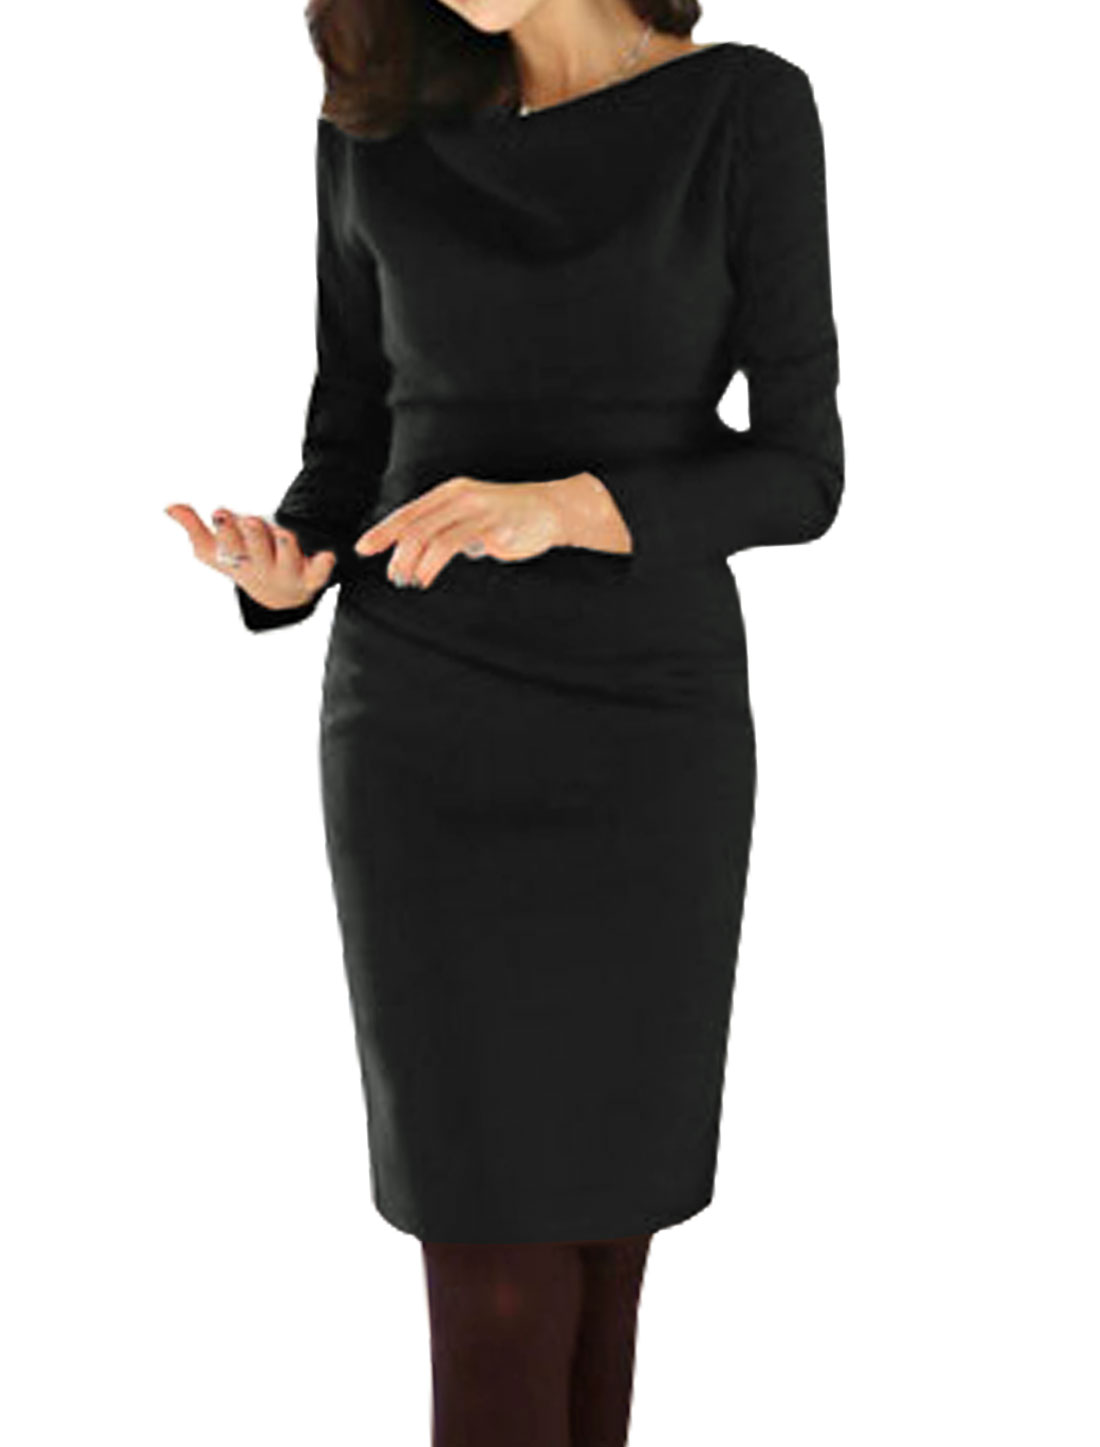 Ladies Long Sleeves Cowl Neck Ruched Sheath Dress Black M